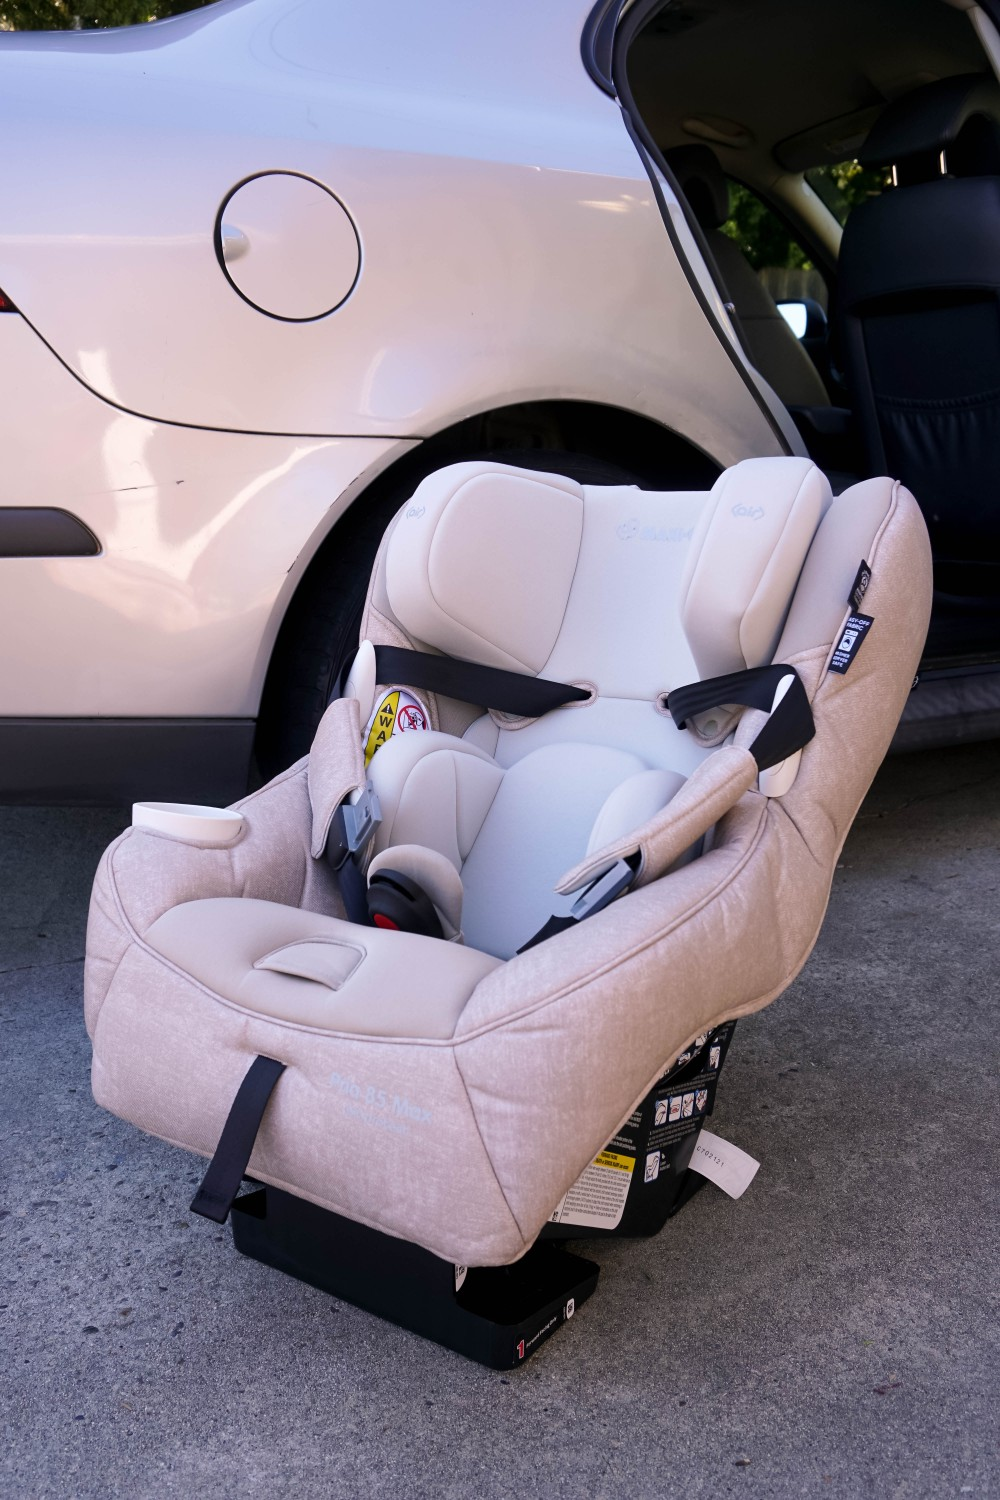 Maxi-Cosi Pria 85 Max Convertible Car Seat-Maxi Cosi Car Seat-Baby Gear-Best of Baby Products-Convertible Car Seat-Motherhood Post-Have Need Want 2